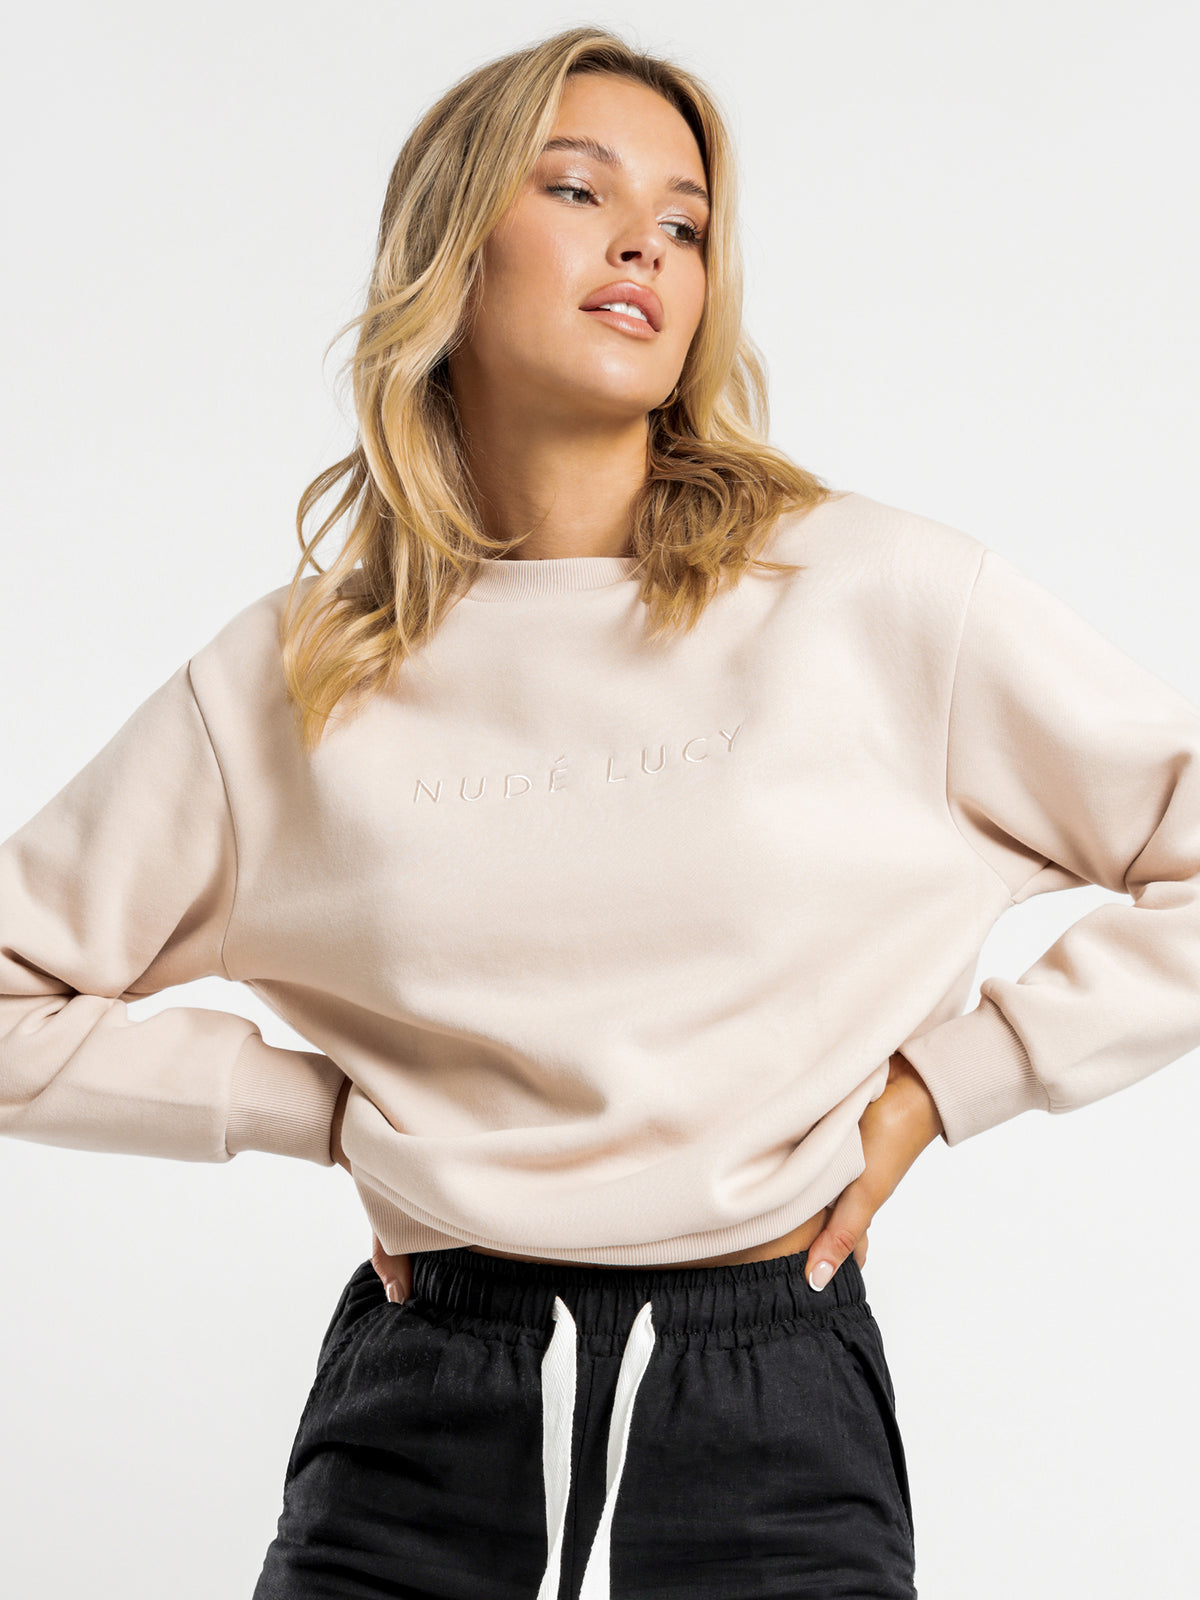 Nude Lucy Embroidery Sweater in Blush